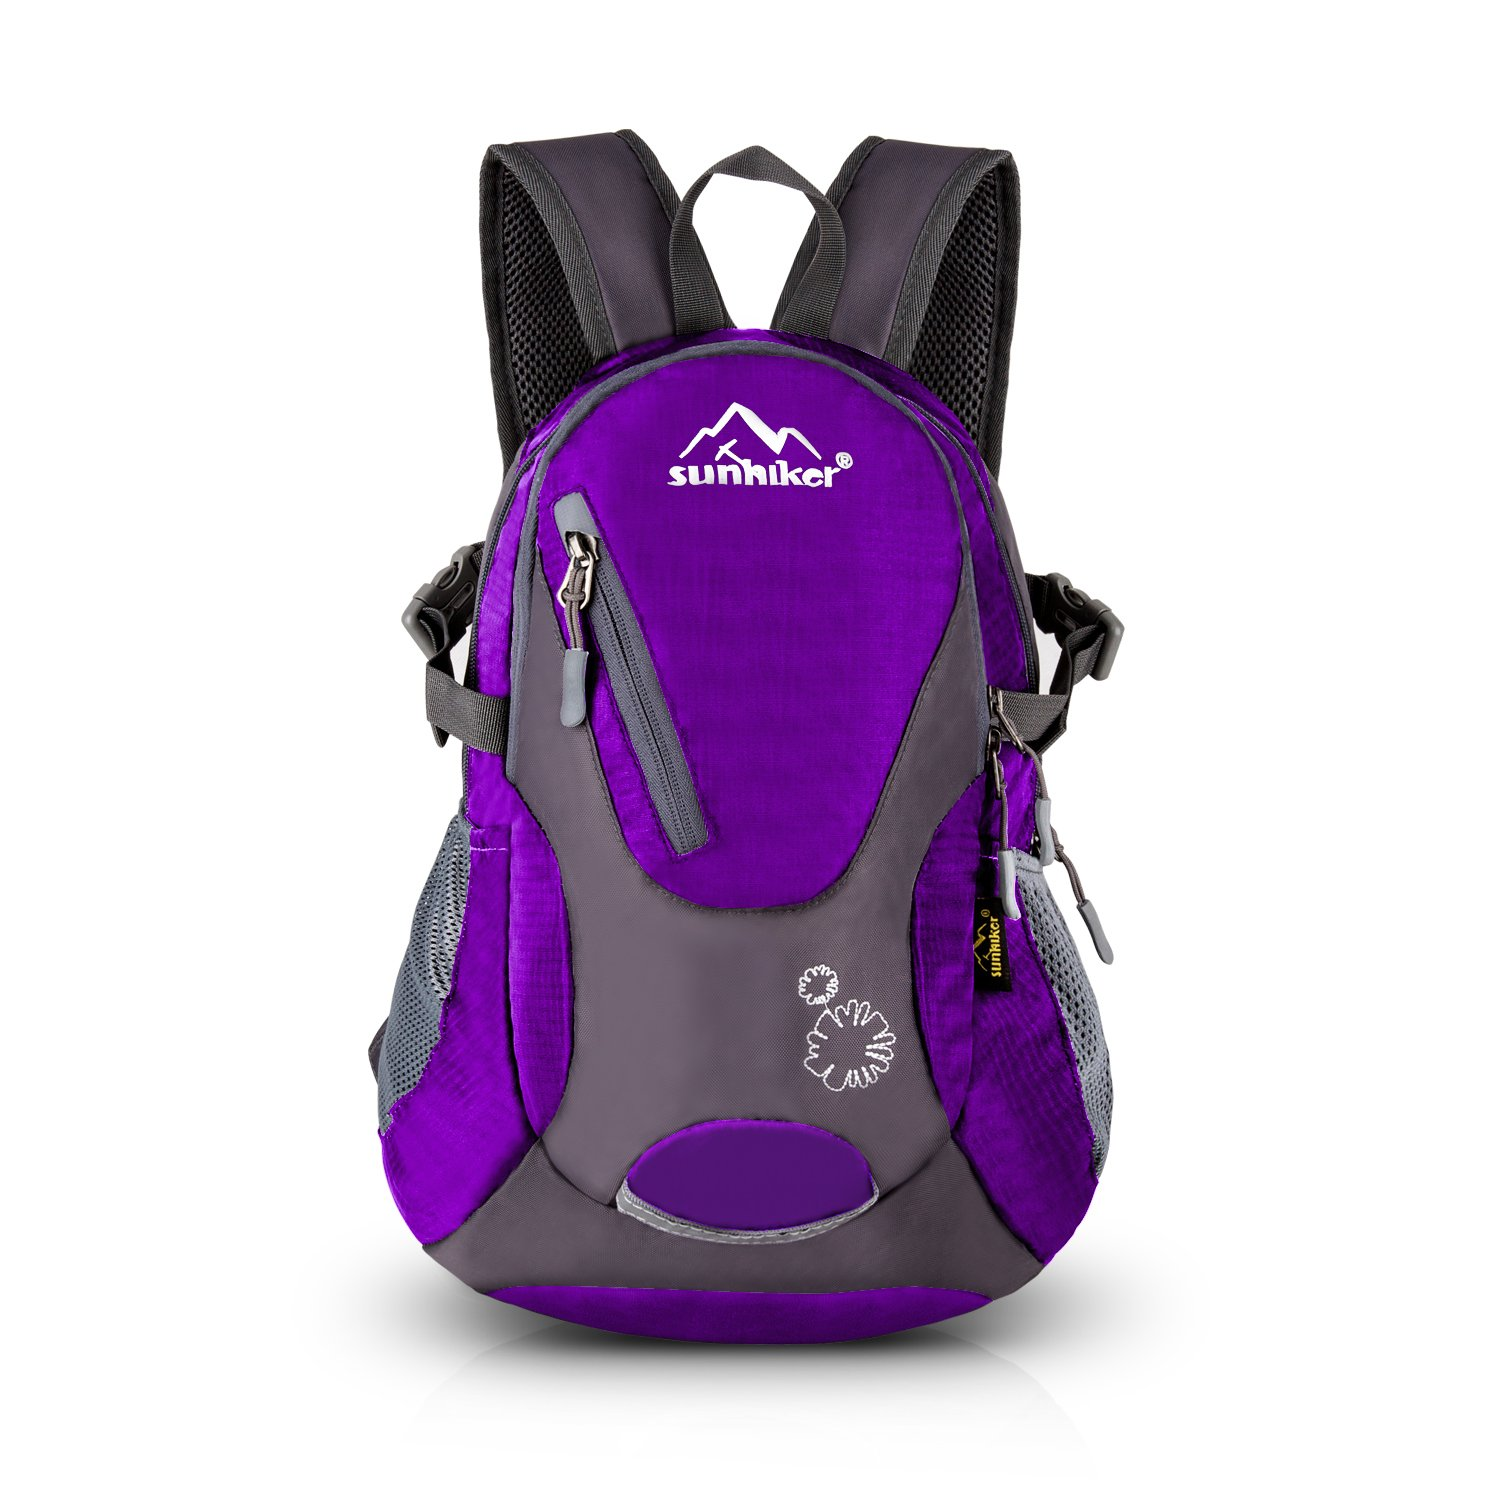 Sunhiker Cycling Hiking Backpack Water Resistant Travel Backpack Lightweight Small Daypack M0714 (Purple) by Sunhiker